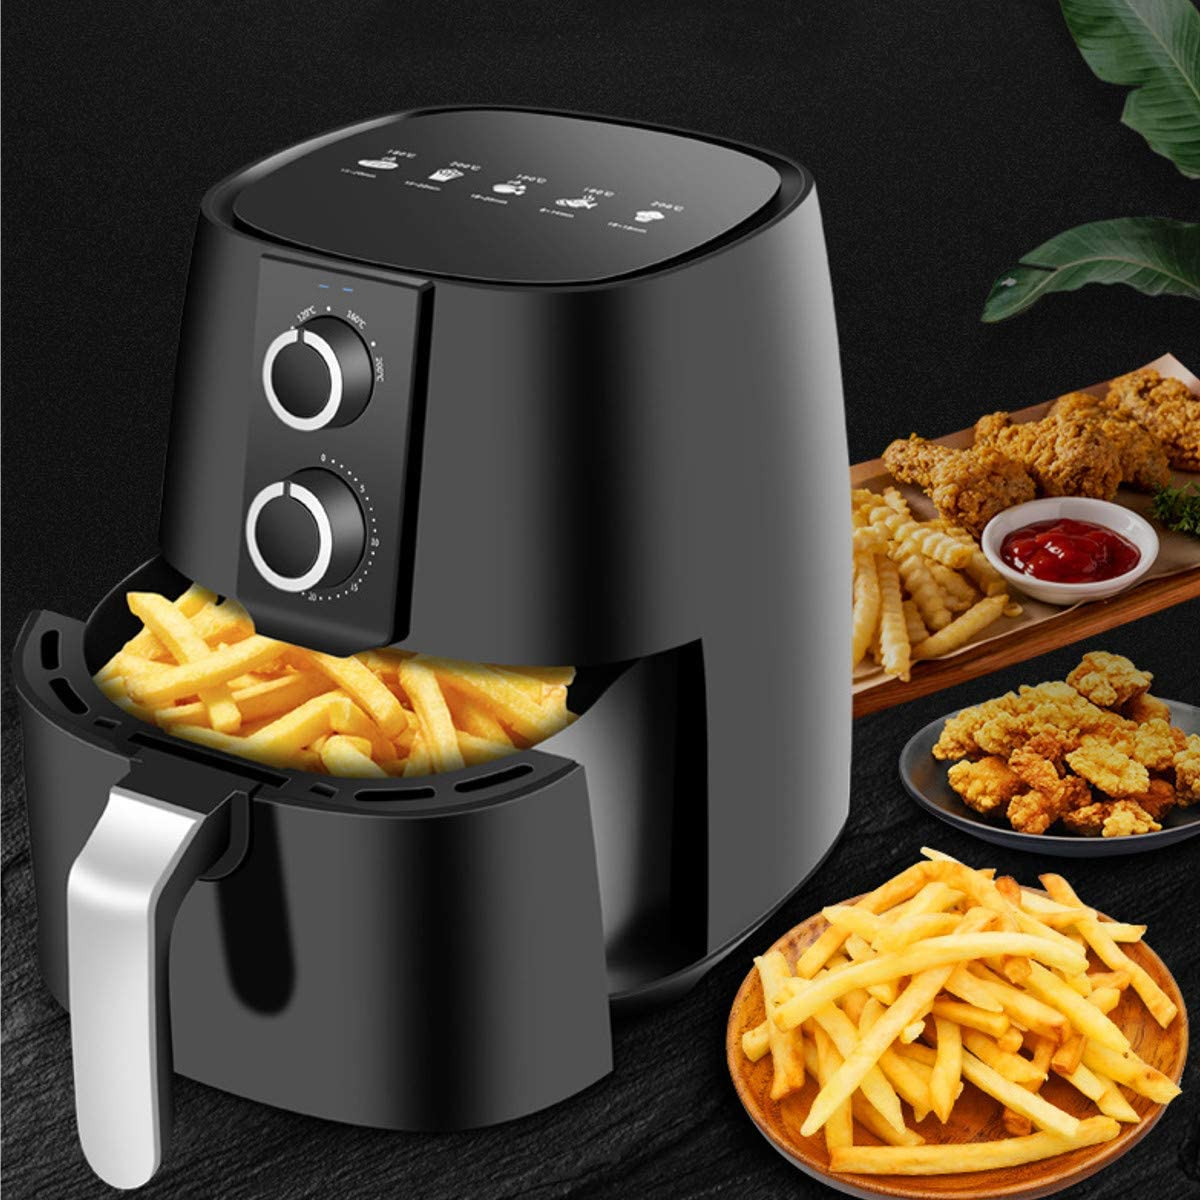 Z&H 5.3 Quart Oil Free Air Fryer,Multifunction Chicken Hot Air Fryers Health Fryer Oven Pizza Cooker Dehydrator Smart Touch LCD Electric Airfryer Luxury